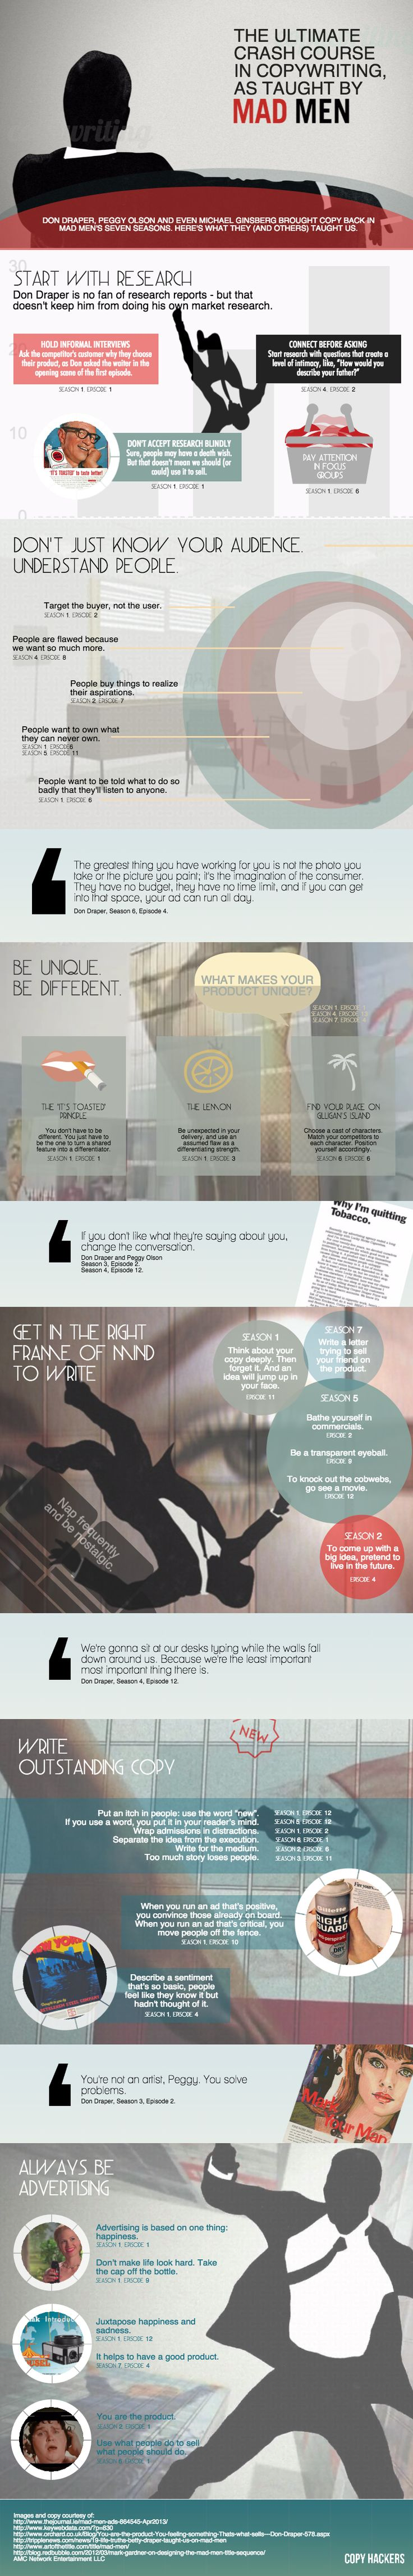 Crash Course in Copywriting From 'Mad Men' #infographic | @HubSpot